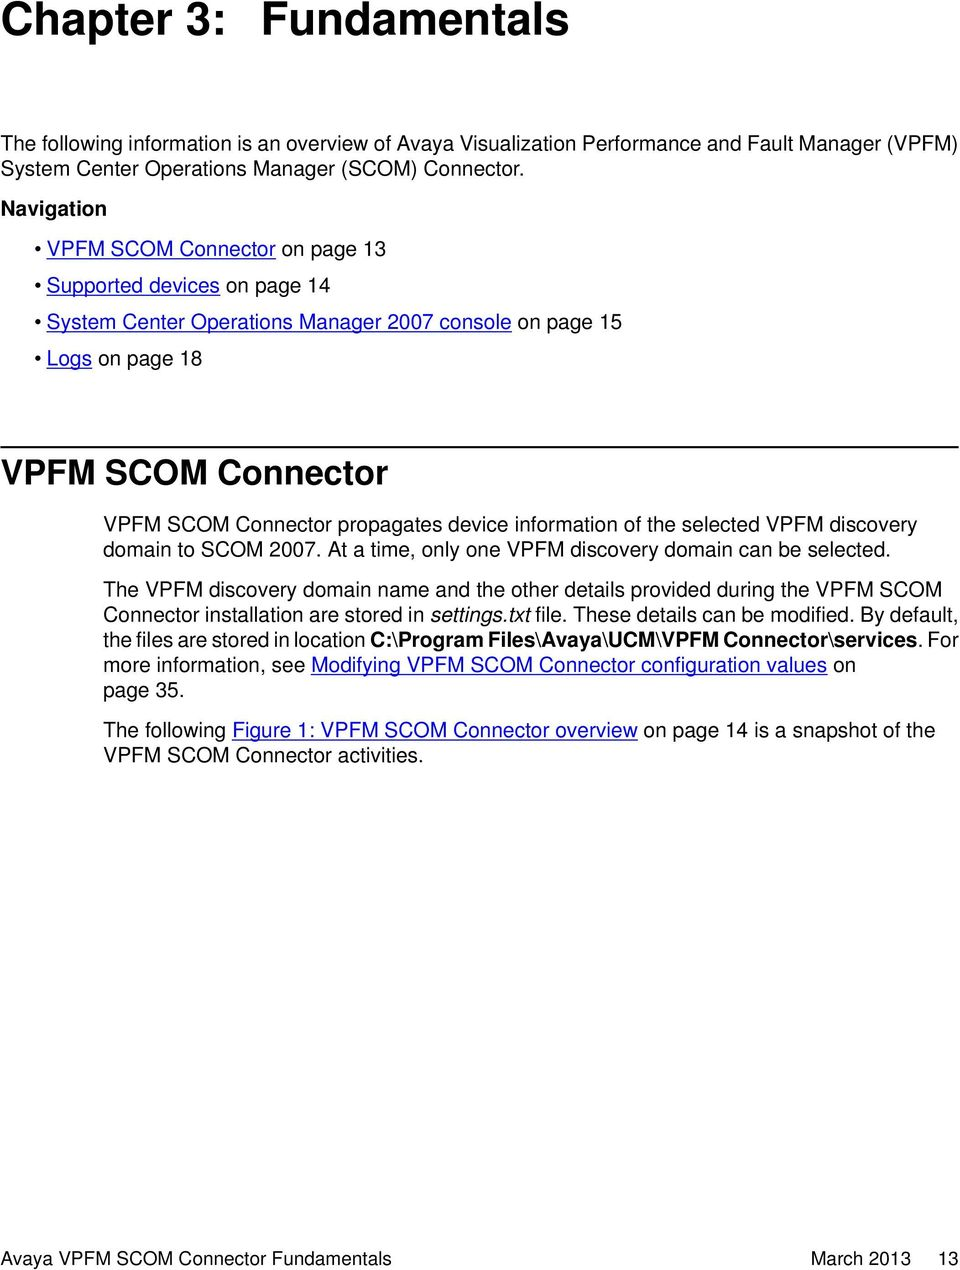 device information of the selected VPFM discovery domain to SCOM 2007. At a time, only one VPFM discovery domain can be selected.